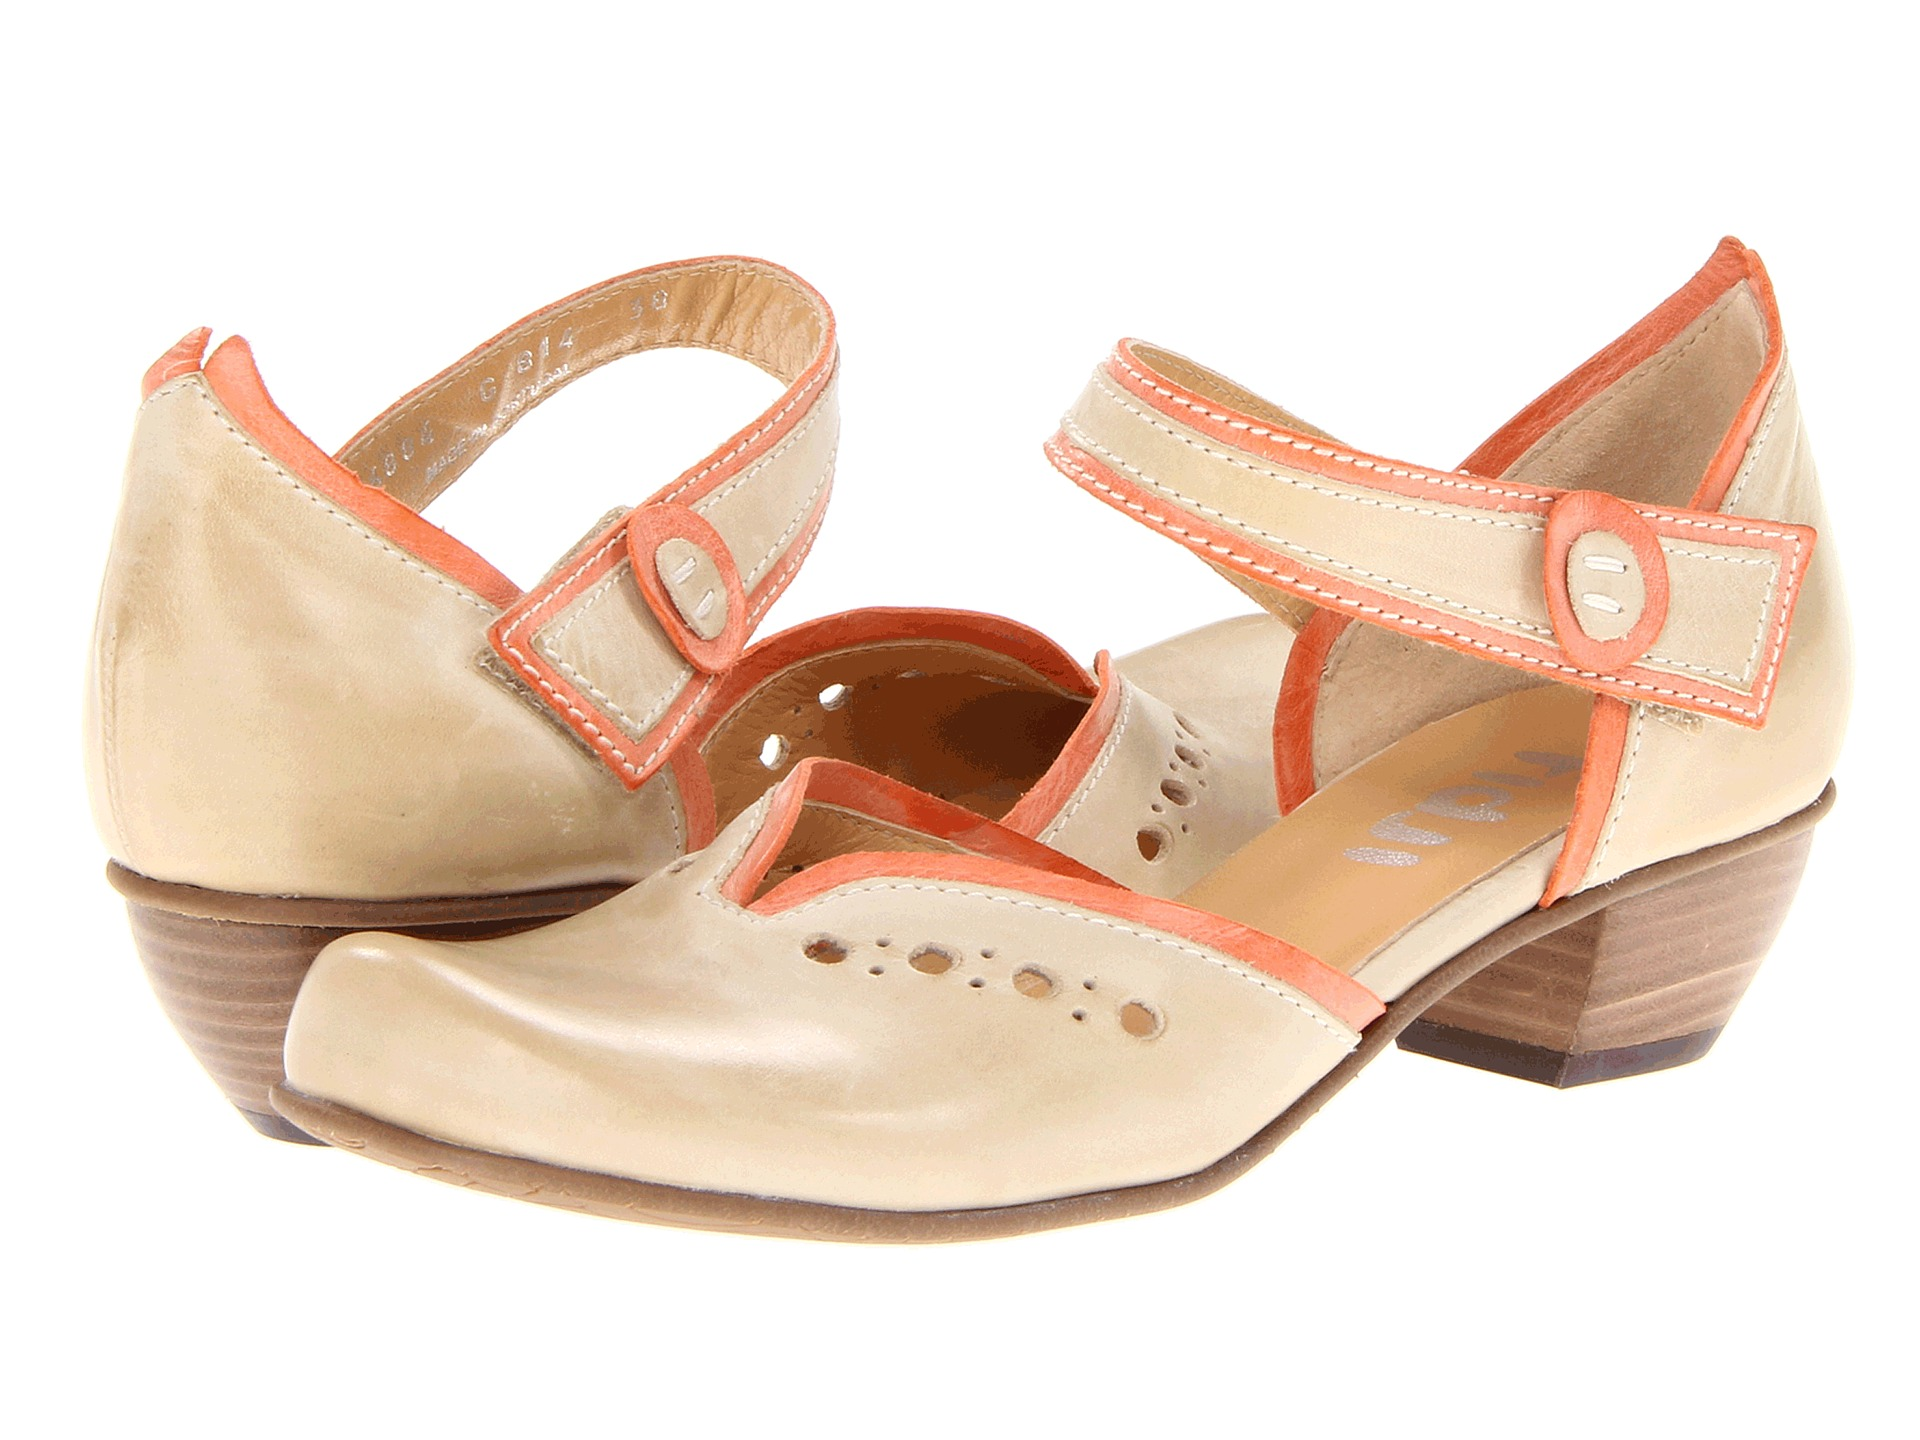 Fidji Women S Shoes  Coleection